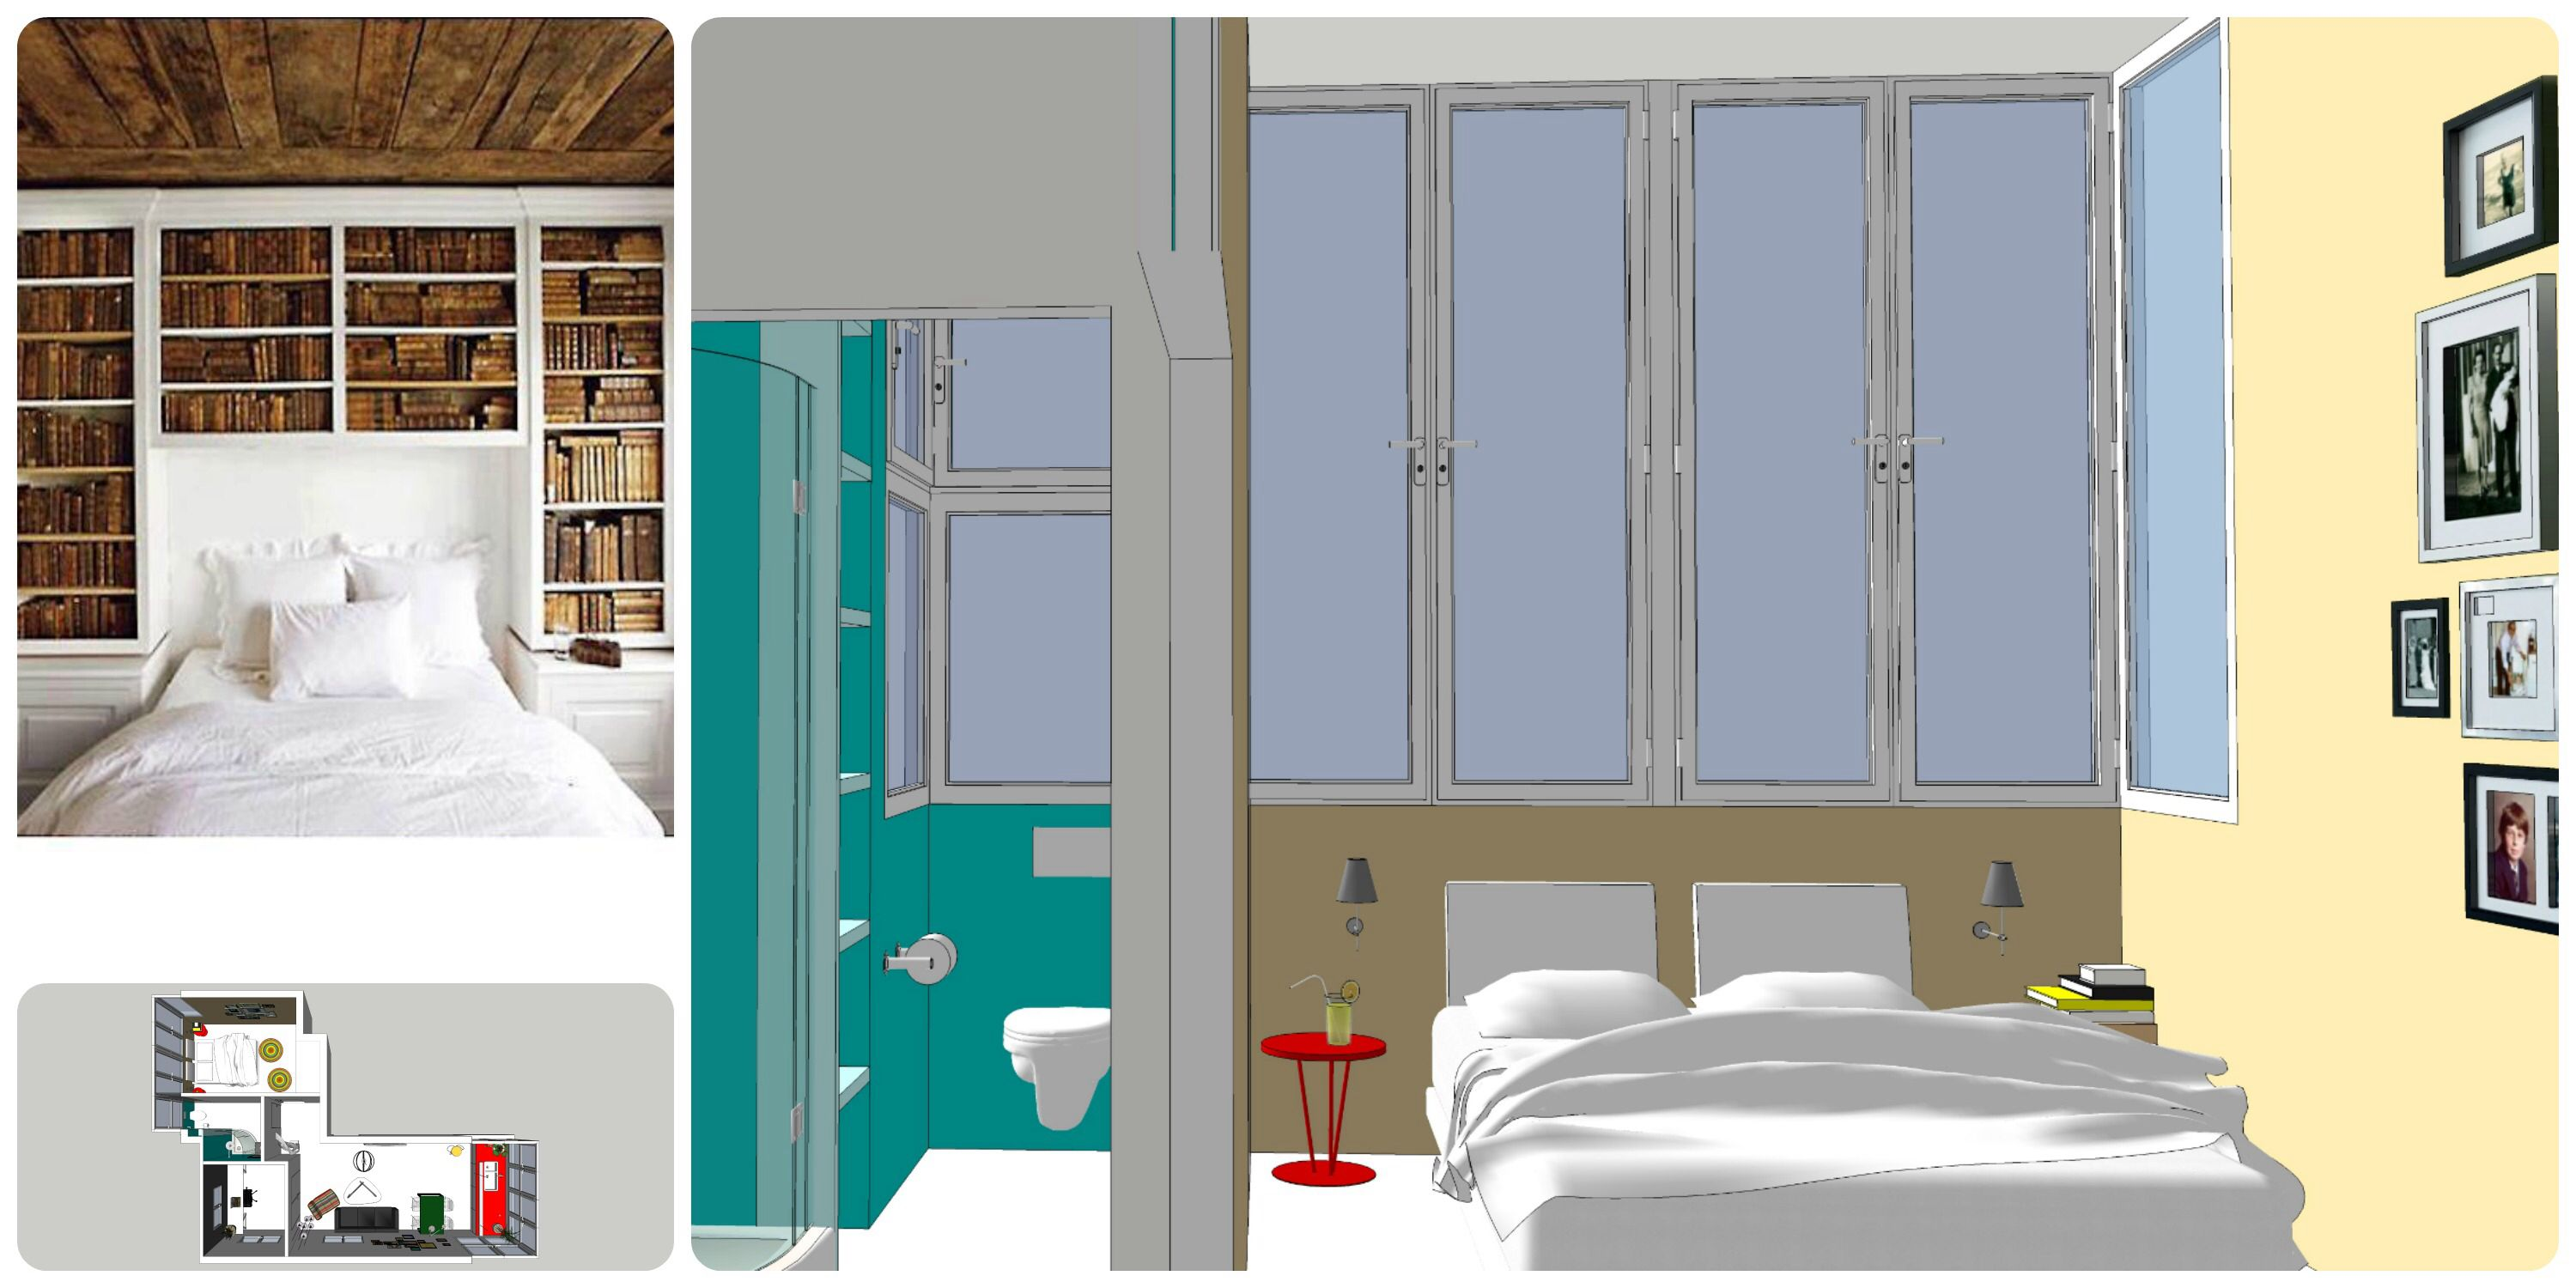 Design a 60 sq apartment in the city Tern it from 2 bedroom apartment to a 3 bedroom in a meter on days See more on my Facebook page https://www.facebook.com/Rachel.design.etc See you soon